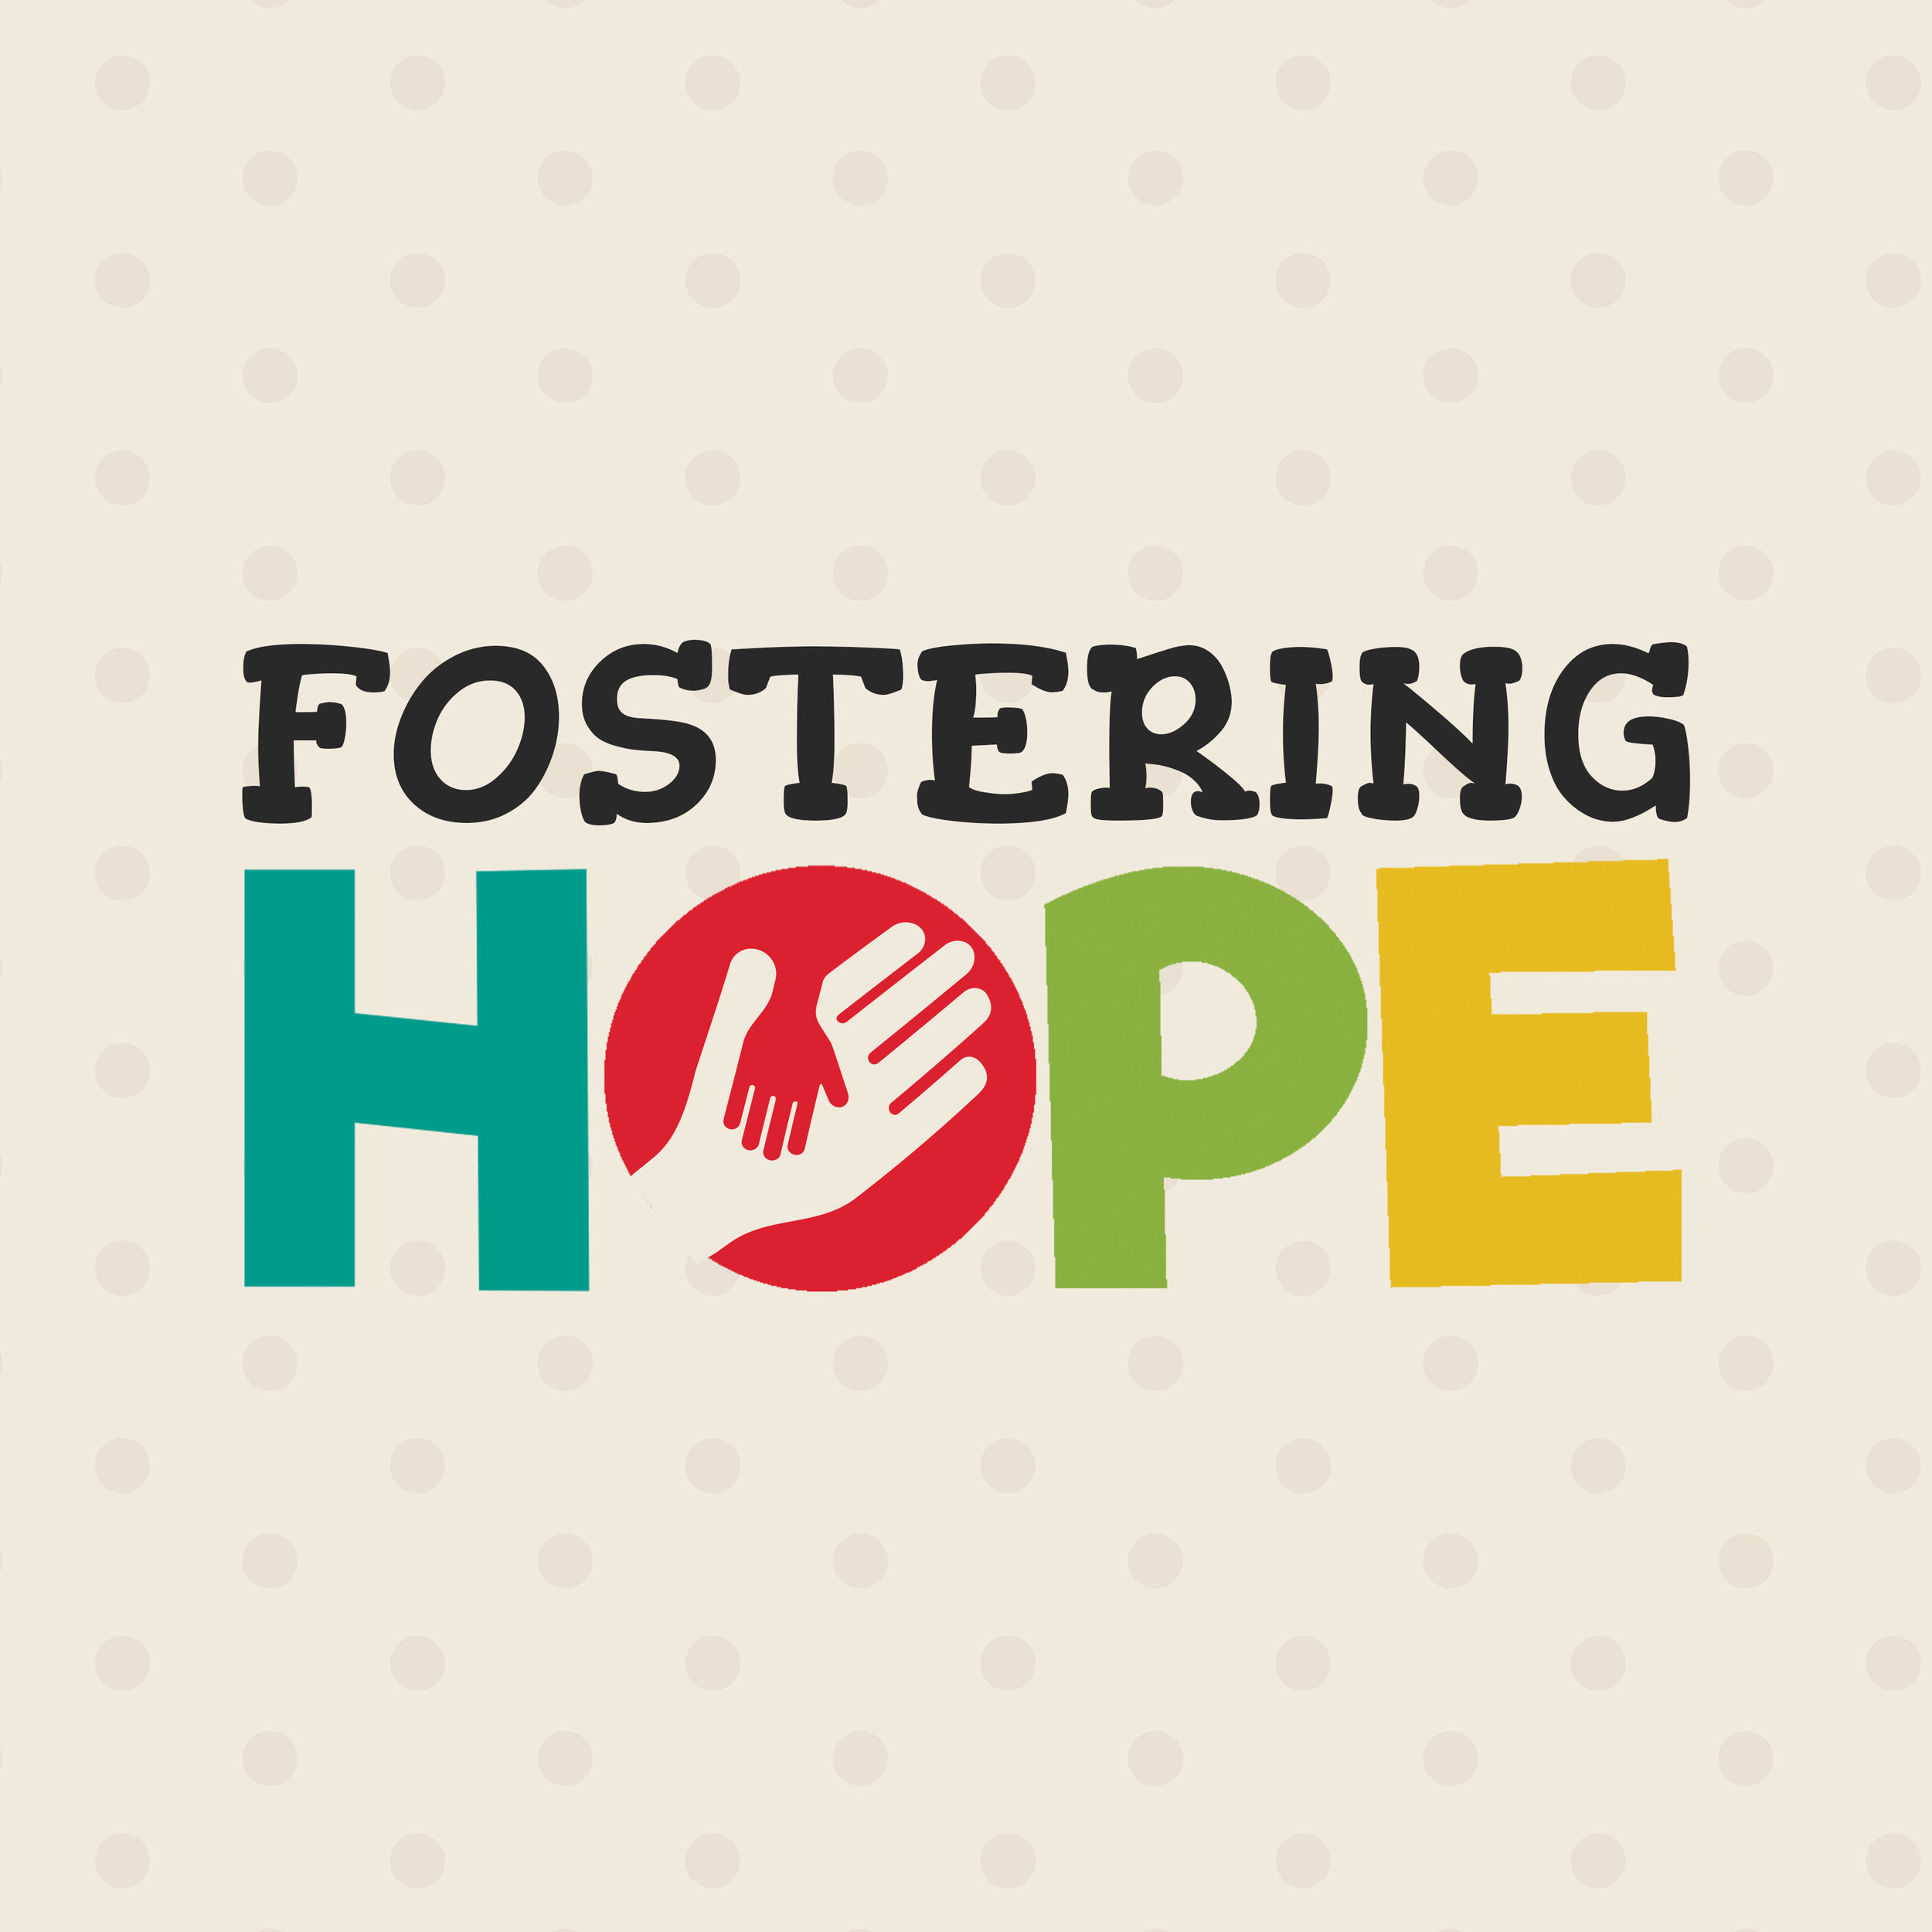 Fostering Hope is a ministry of Hope Church that has a desire to have families waiting on children instead of children waiting on families.